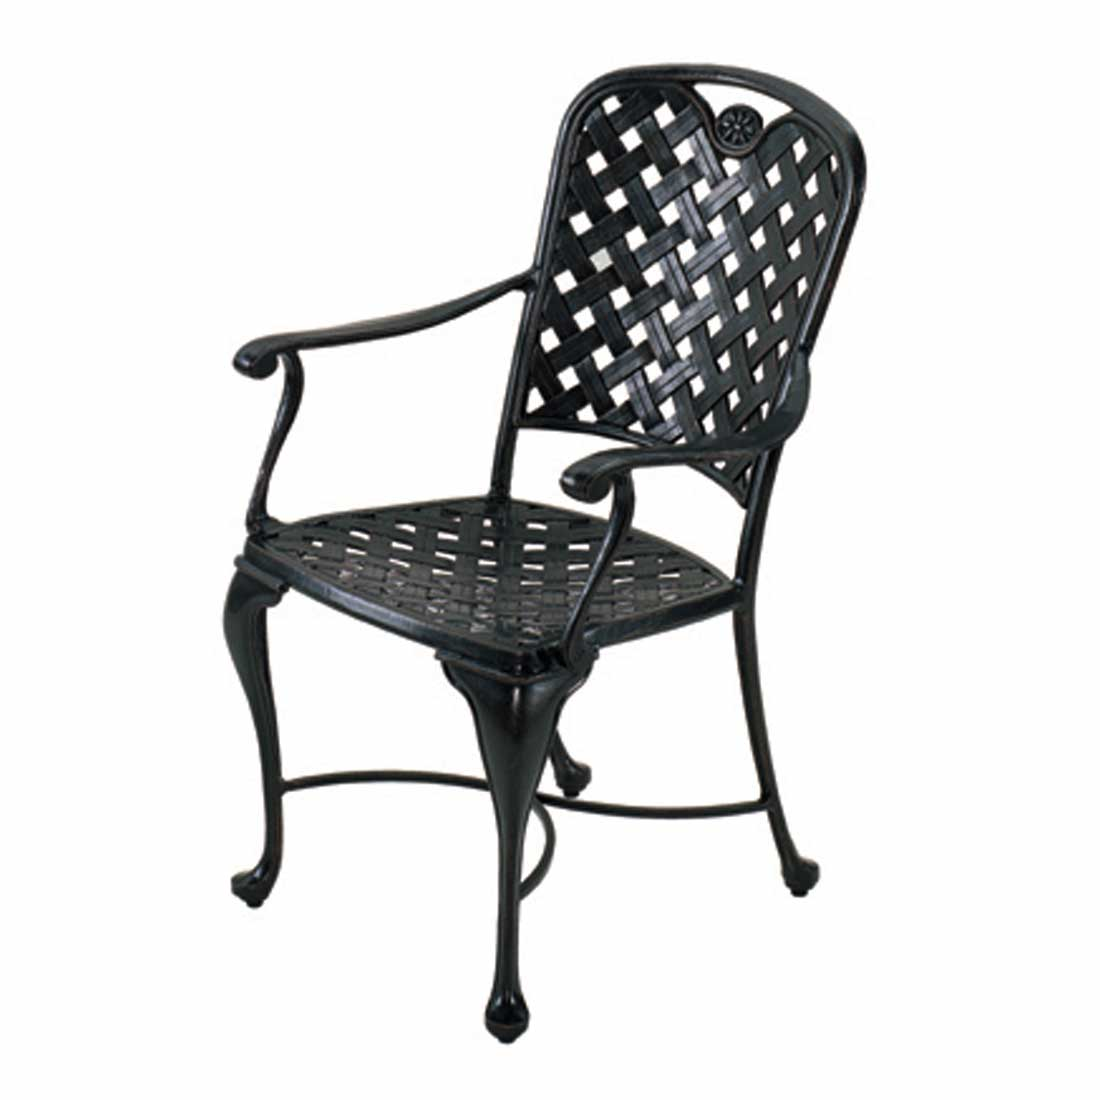 provance arm chair - Dimensions: W25 D22.5 H37.5